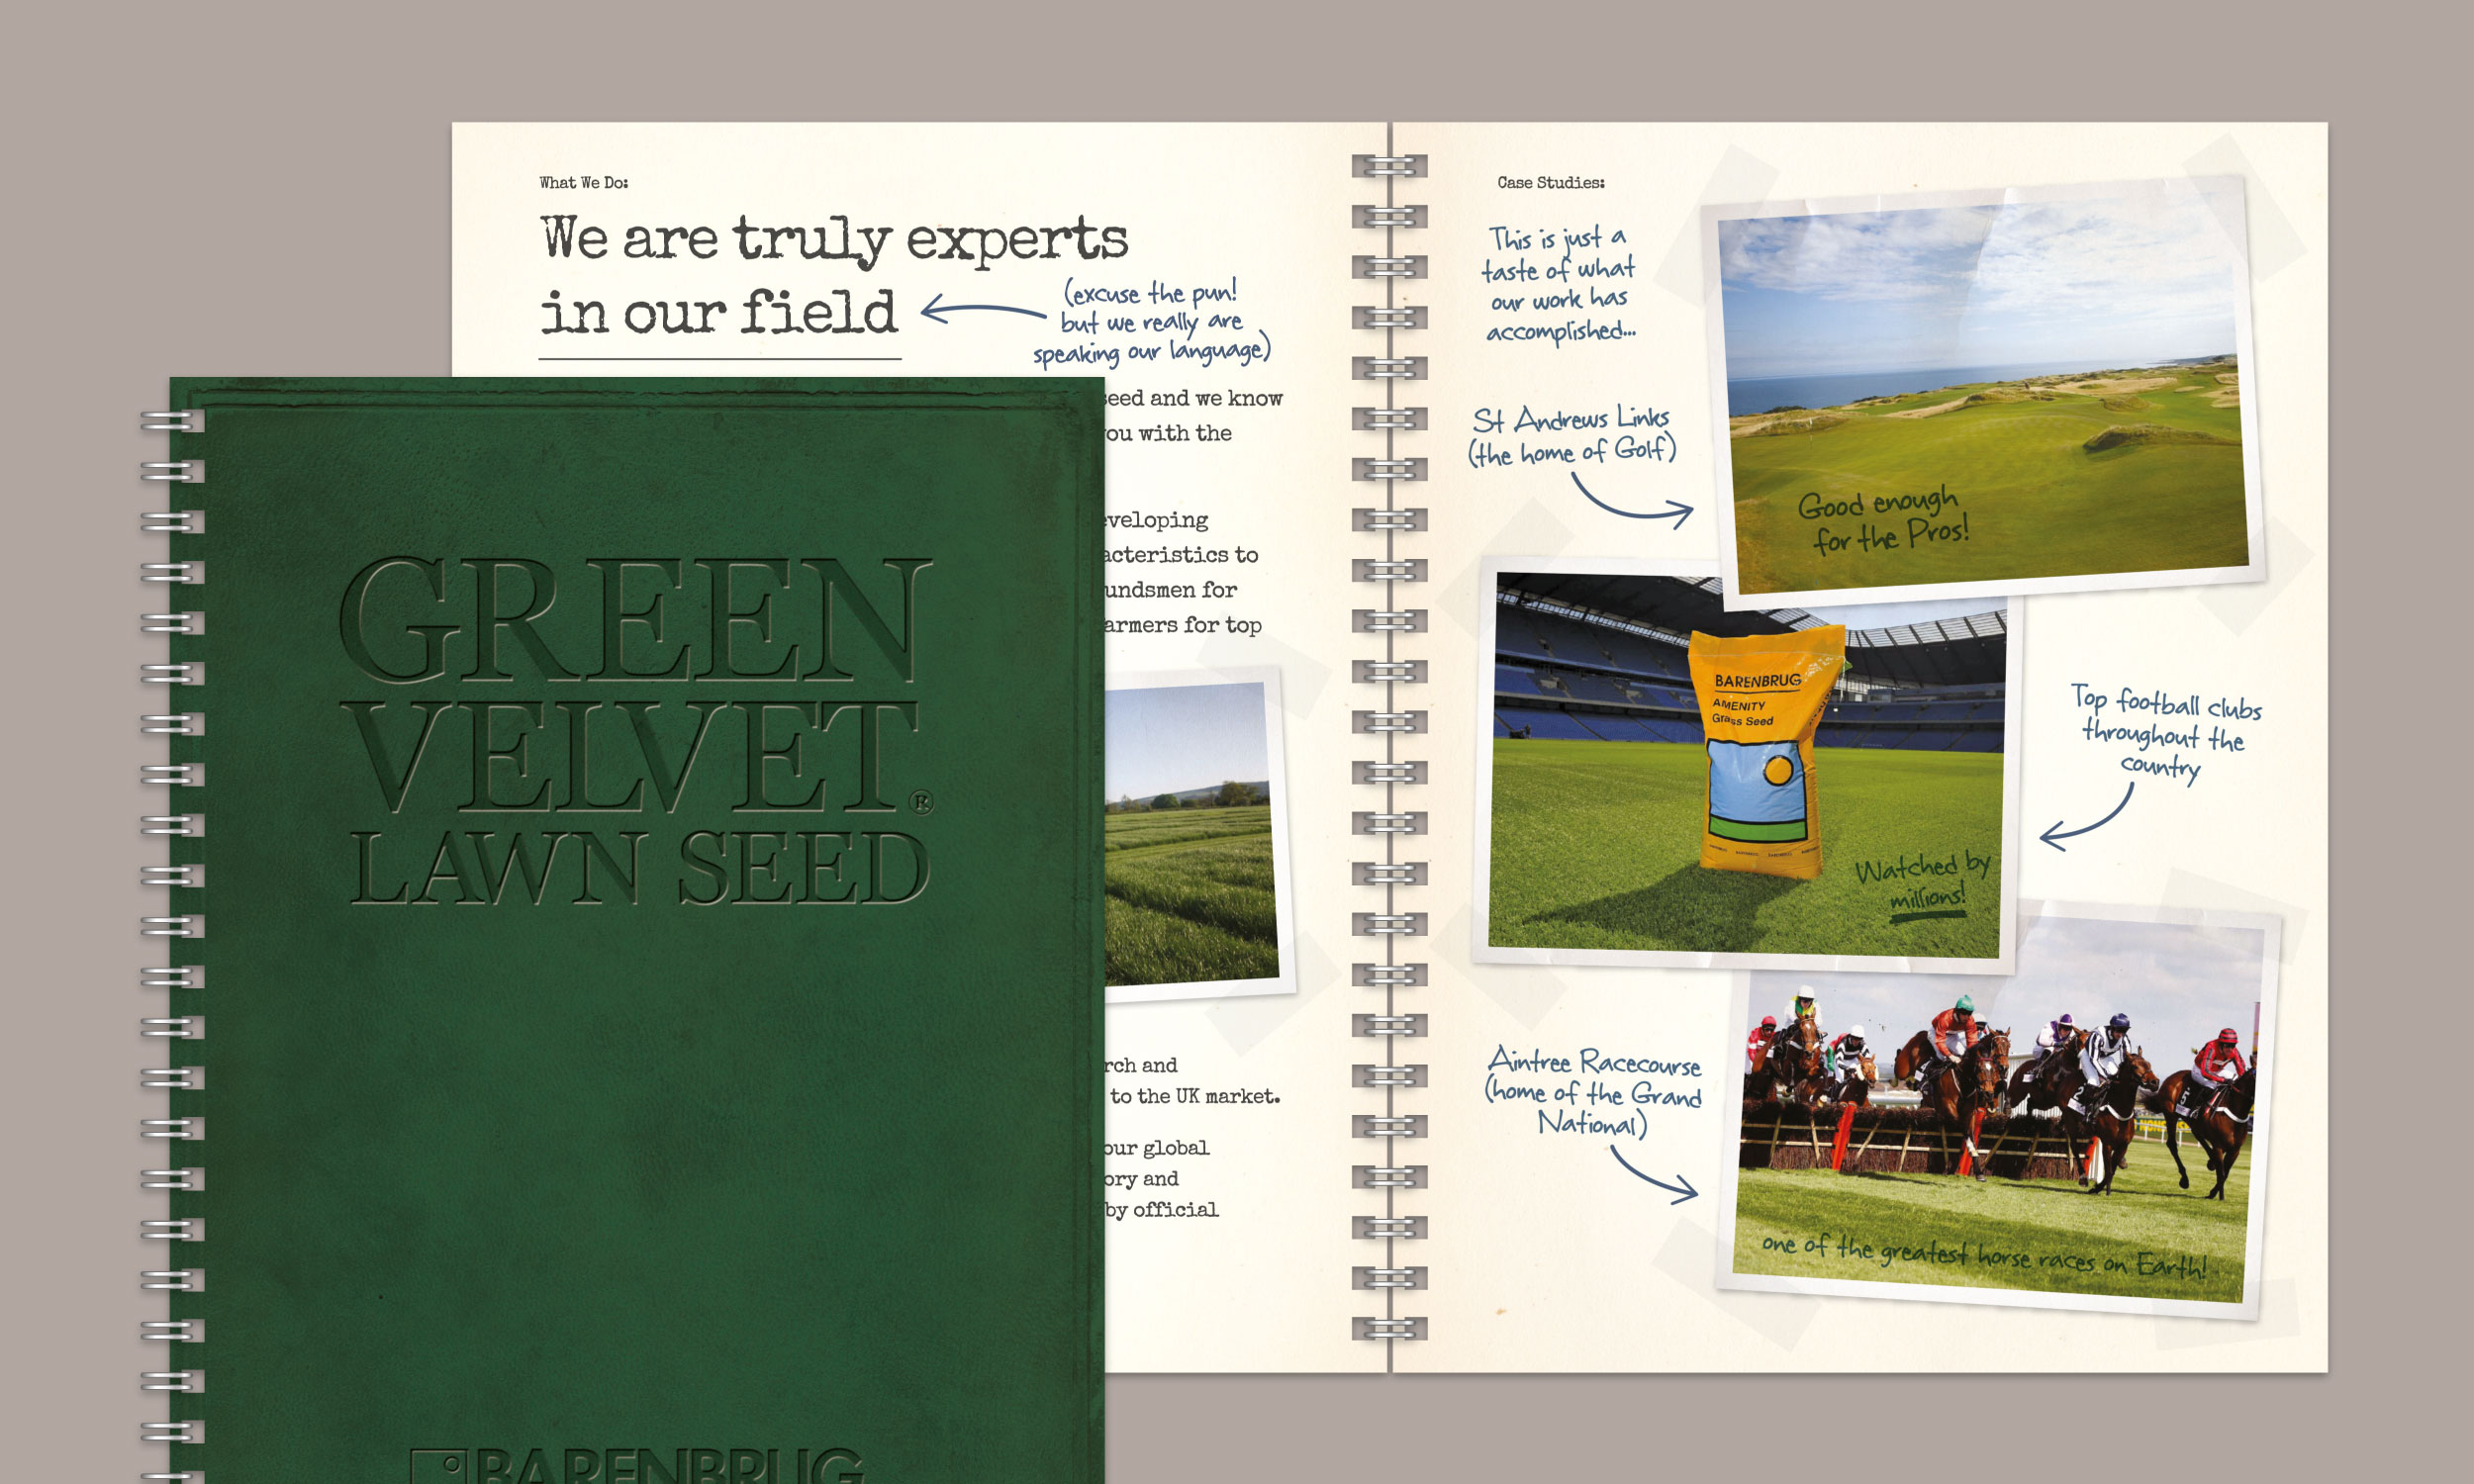 Green Velvet Lawn Seed brochure design